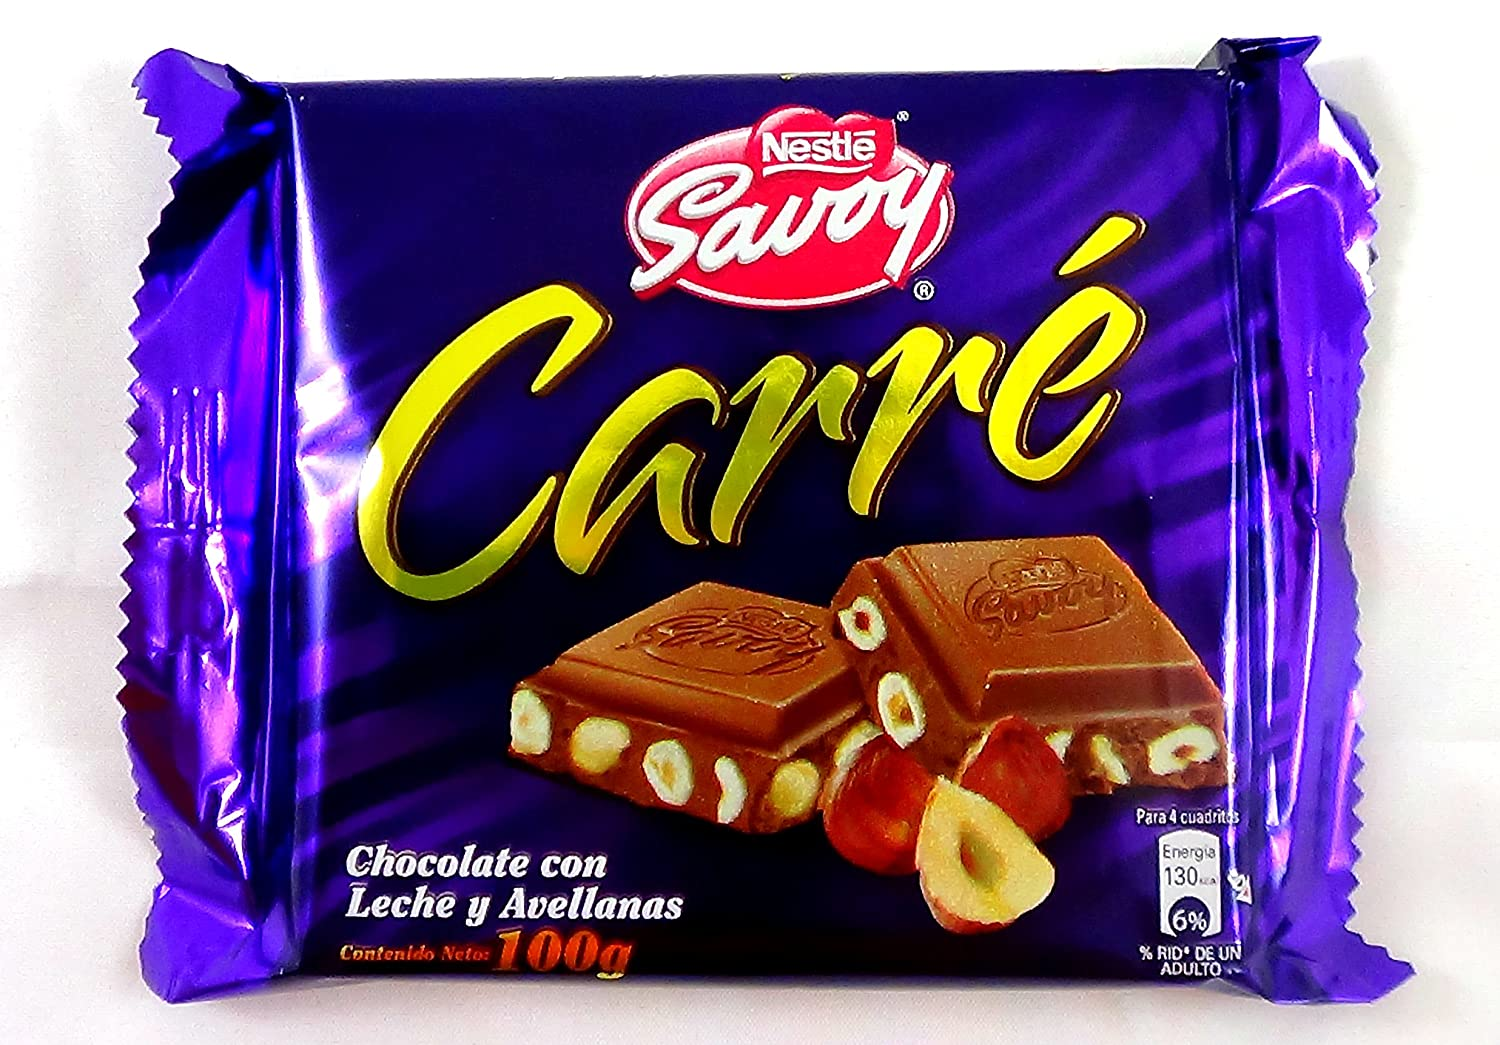 Amazon.com : Carré Autentico Chocolate Savoy Venezolano 1 Box, 10 Bars (Almonds) : Grocery & Gourmet Food